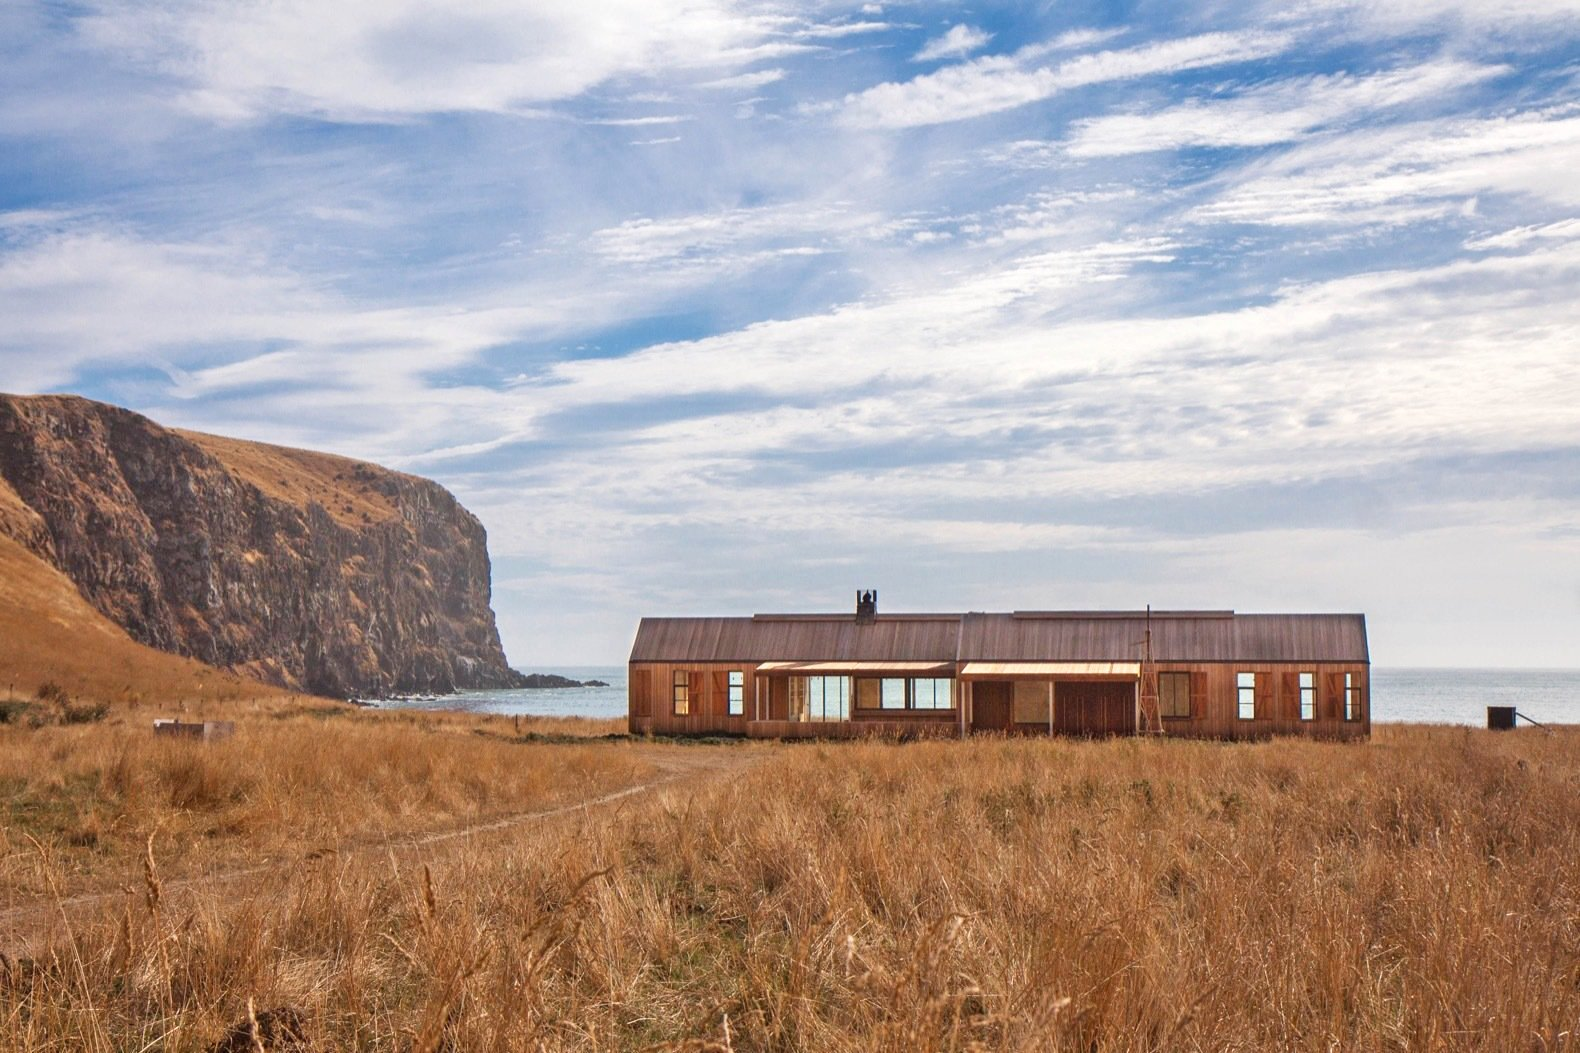 Articles about remote new zealand retreat walled world on Dwell.com